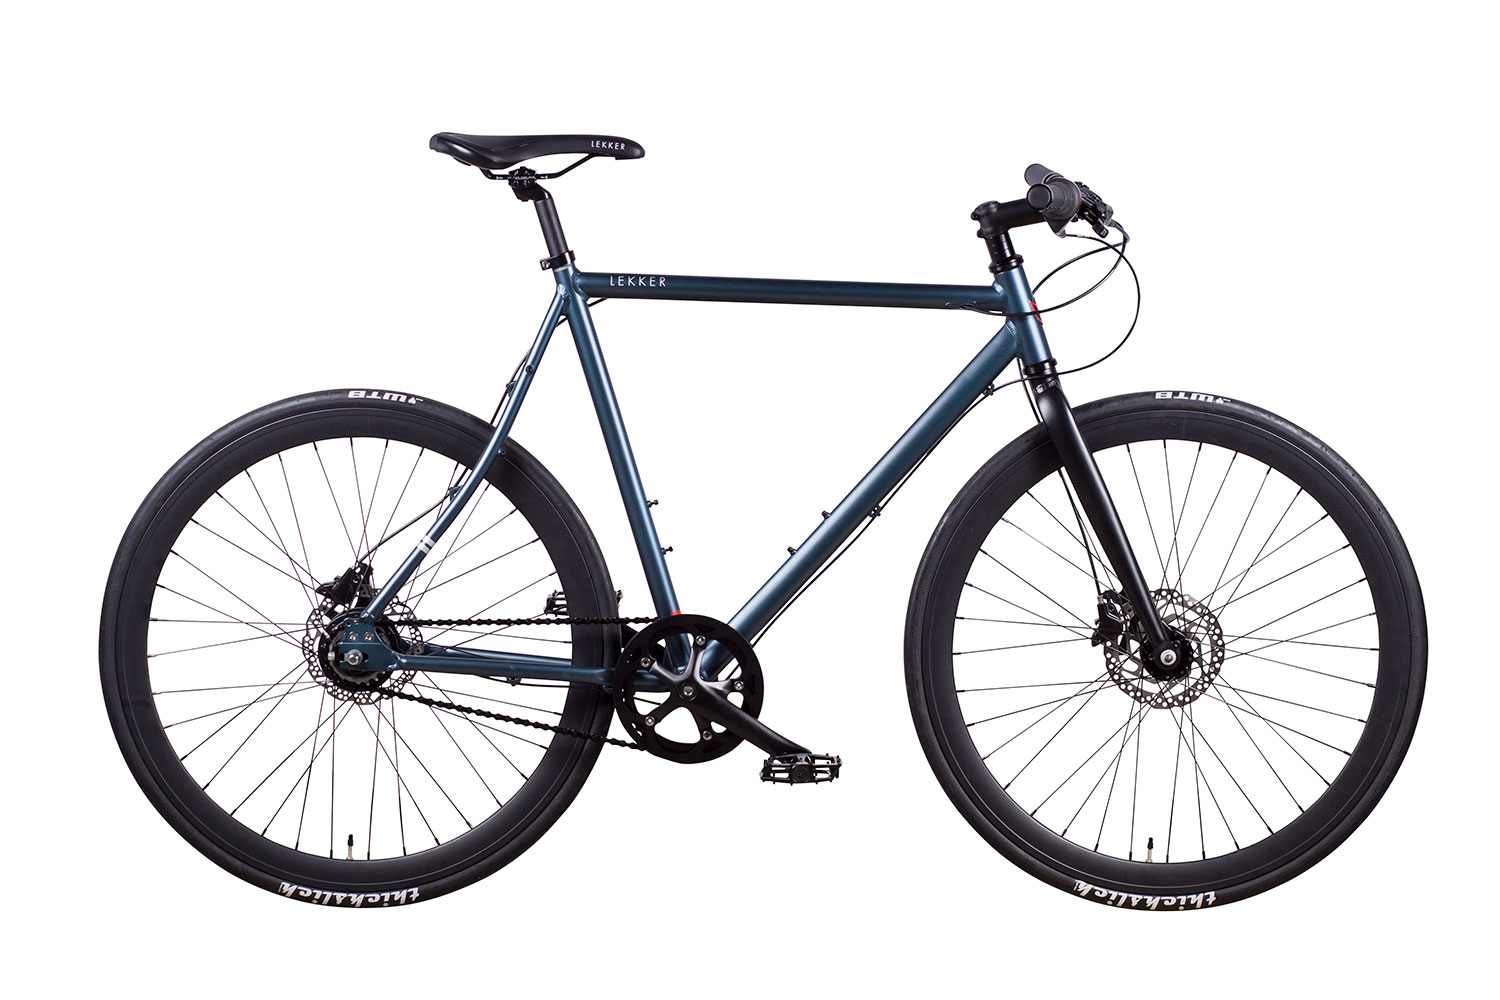 The Elite Series – Amsterdam 8 Speed Chain Drive